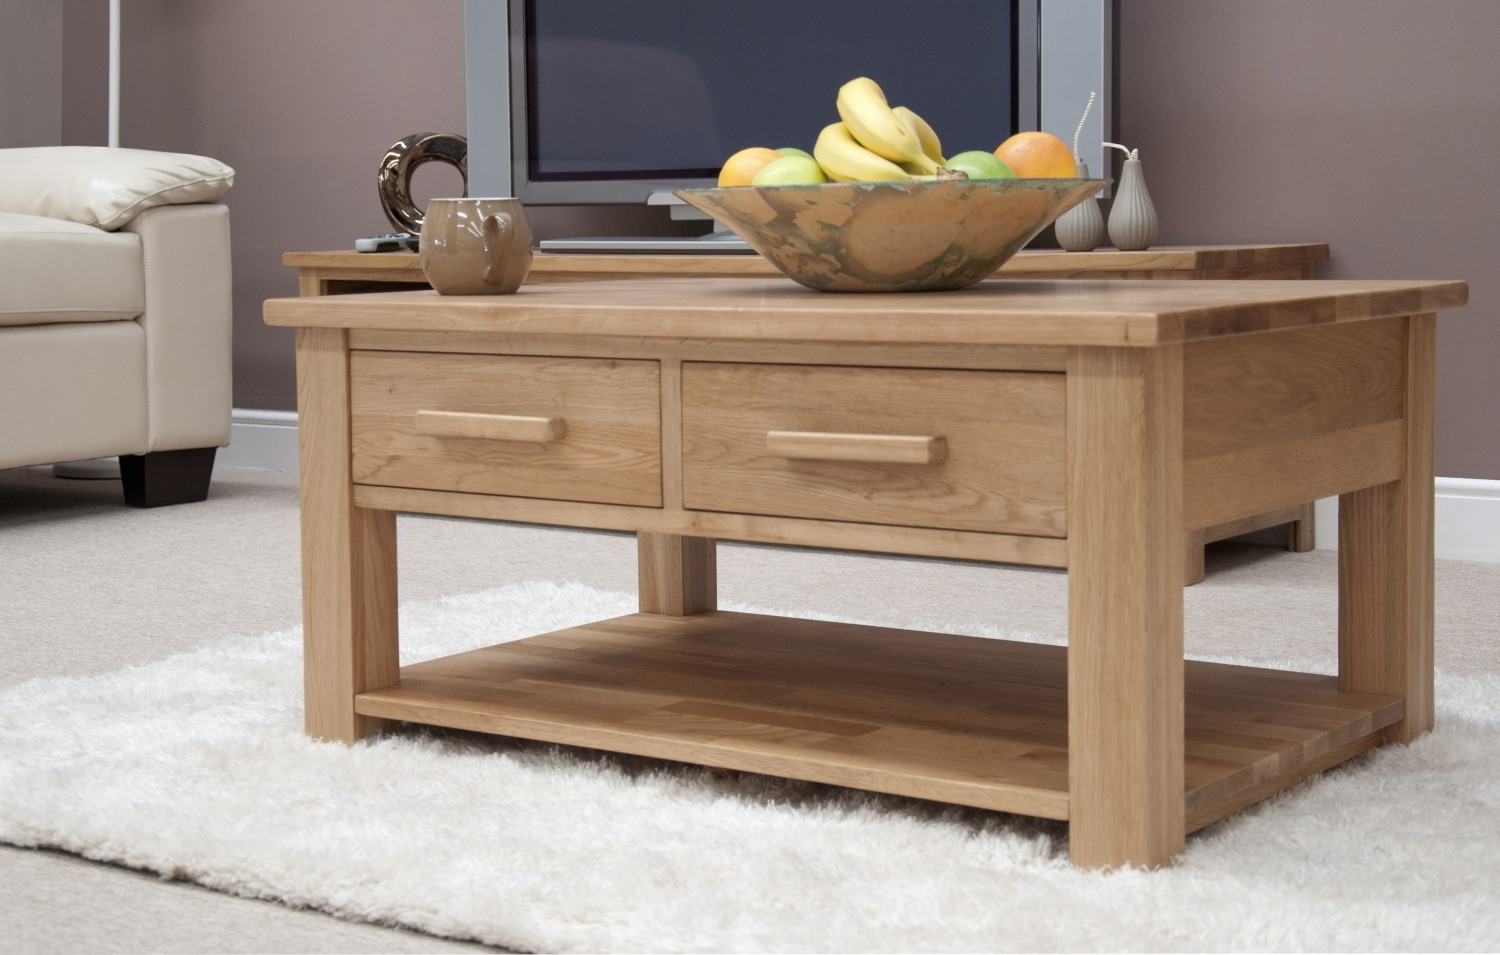 Eton Solid Oak Living Room Lounge Furniture Storage Coffee Table With Drawers Ebay